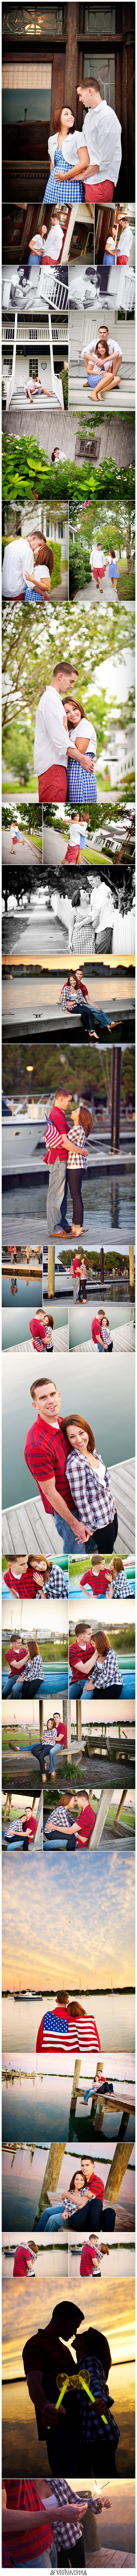 Beaufort NC wedding photographer